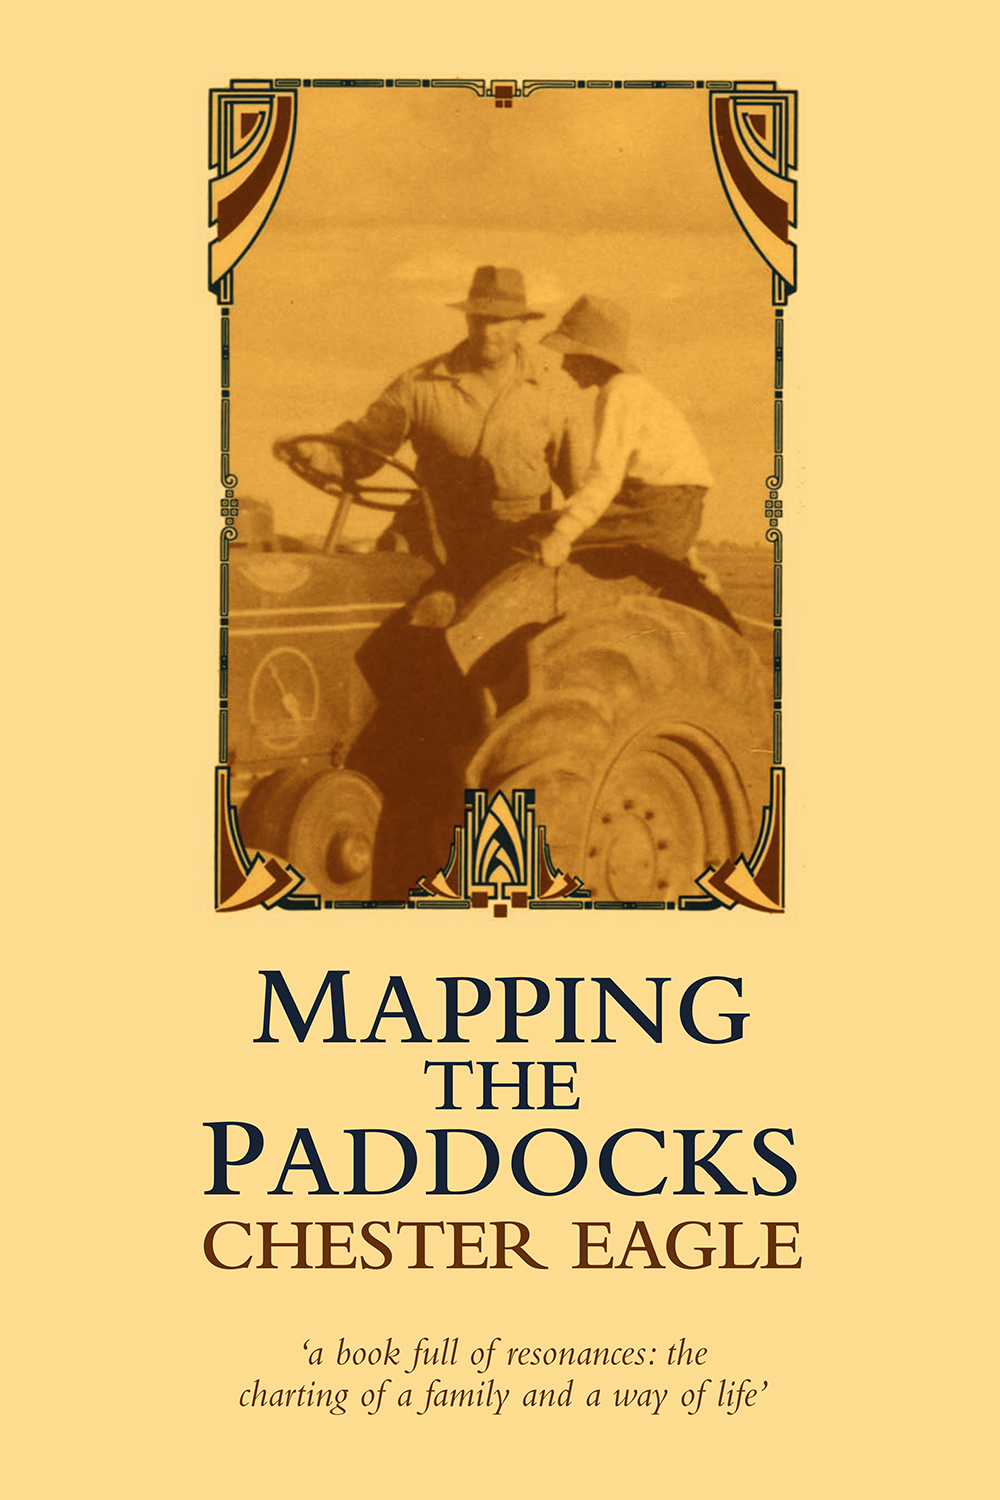 Mapping-The-Paddocks-cover-02